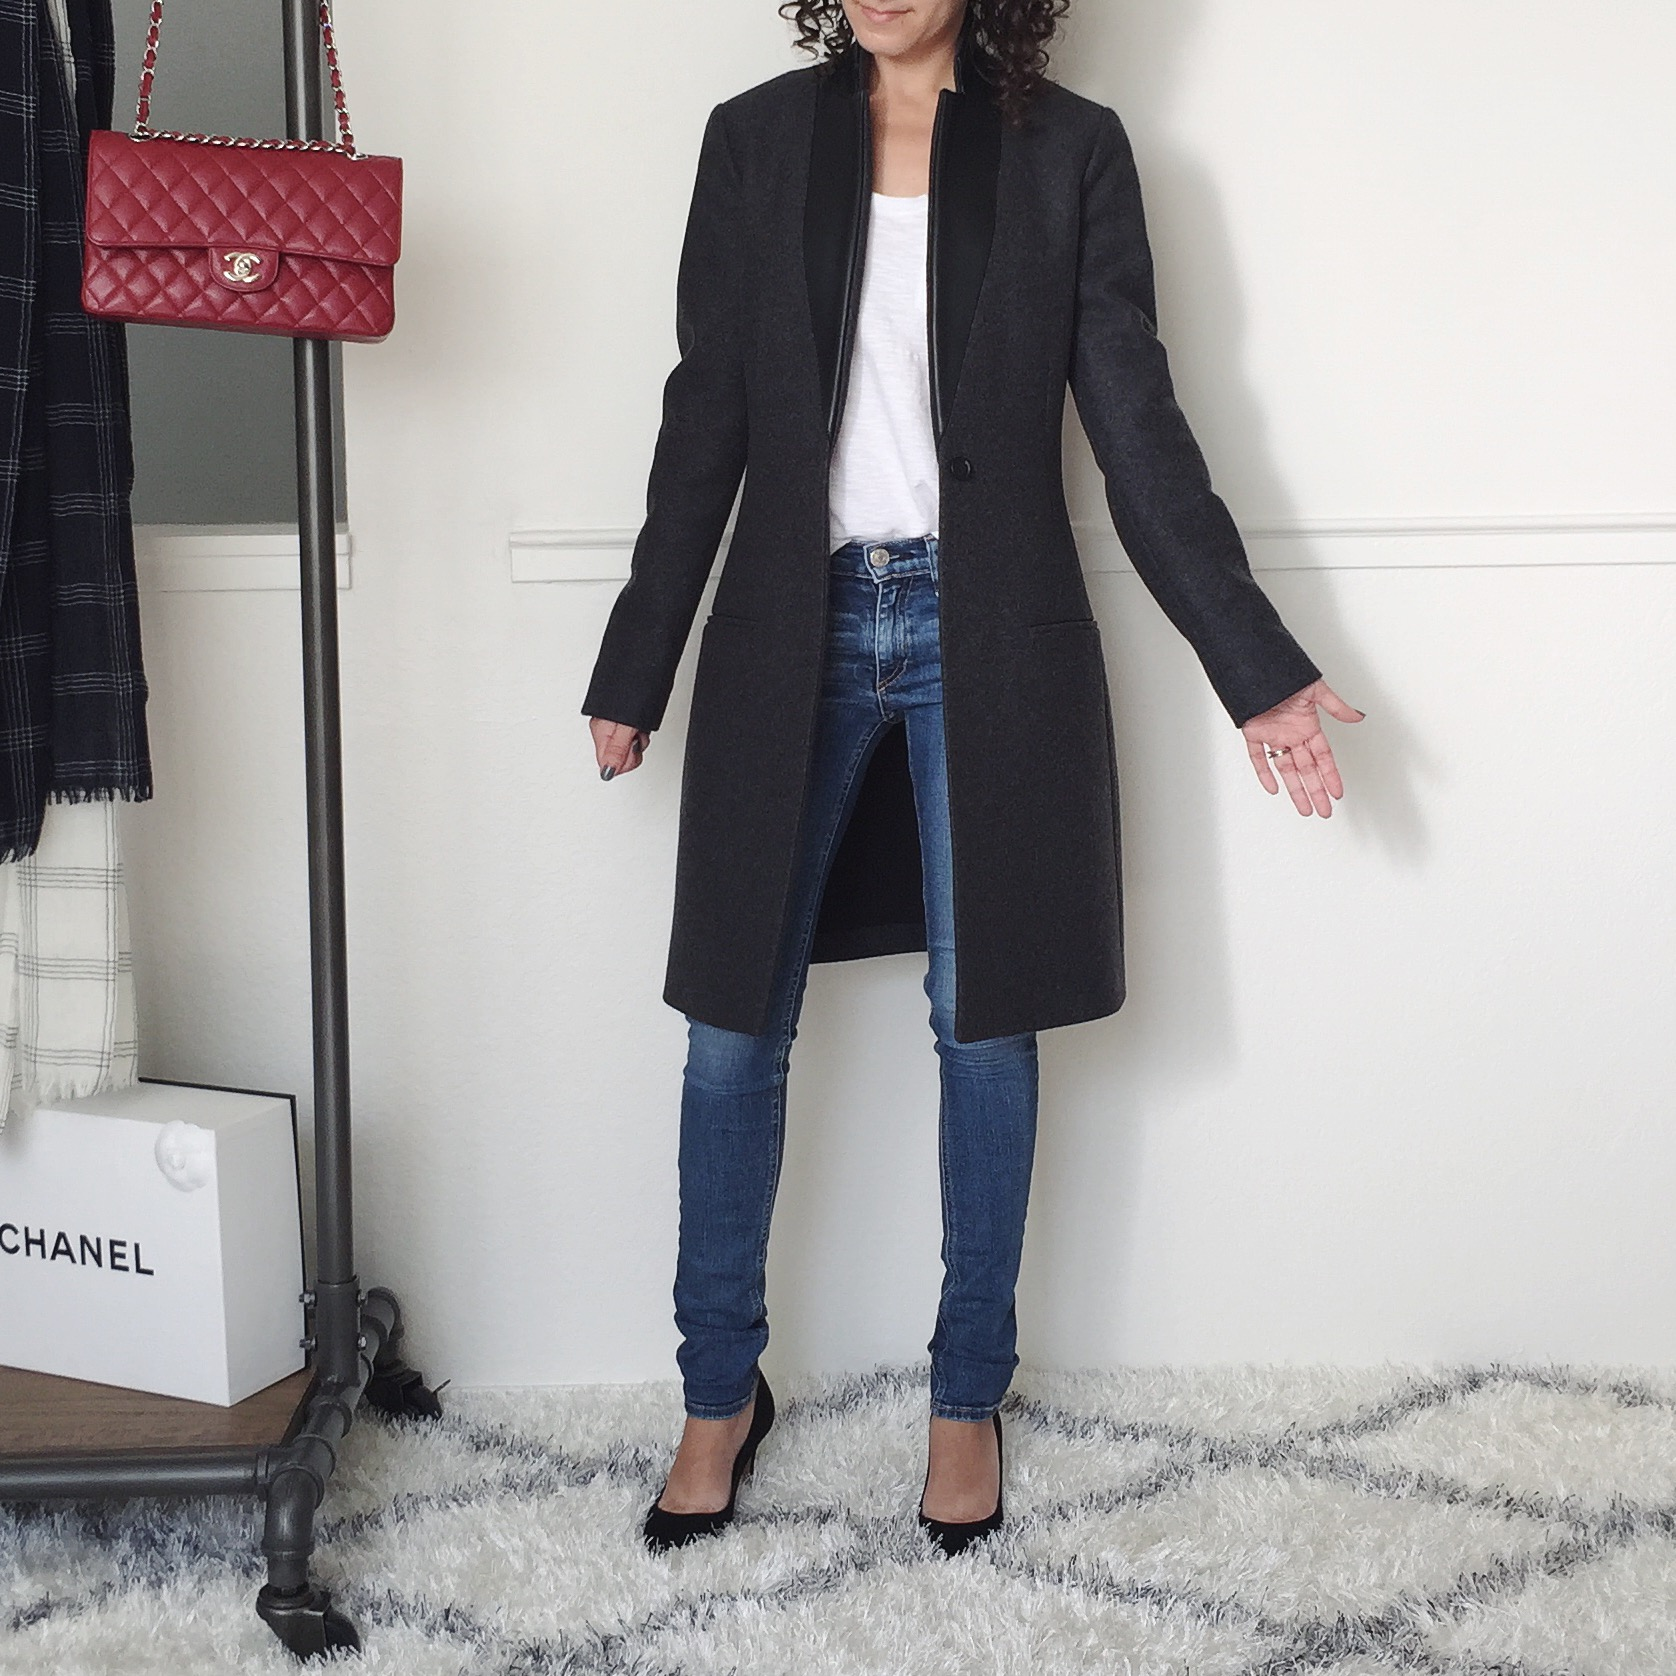 petite allsaints coat review